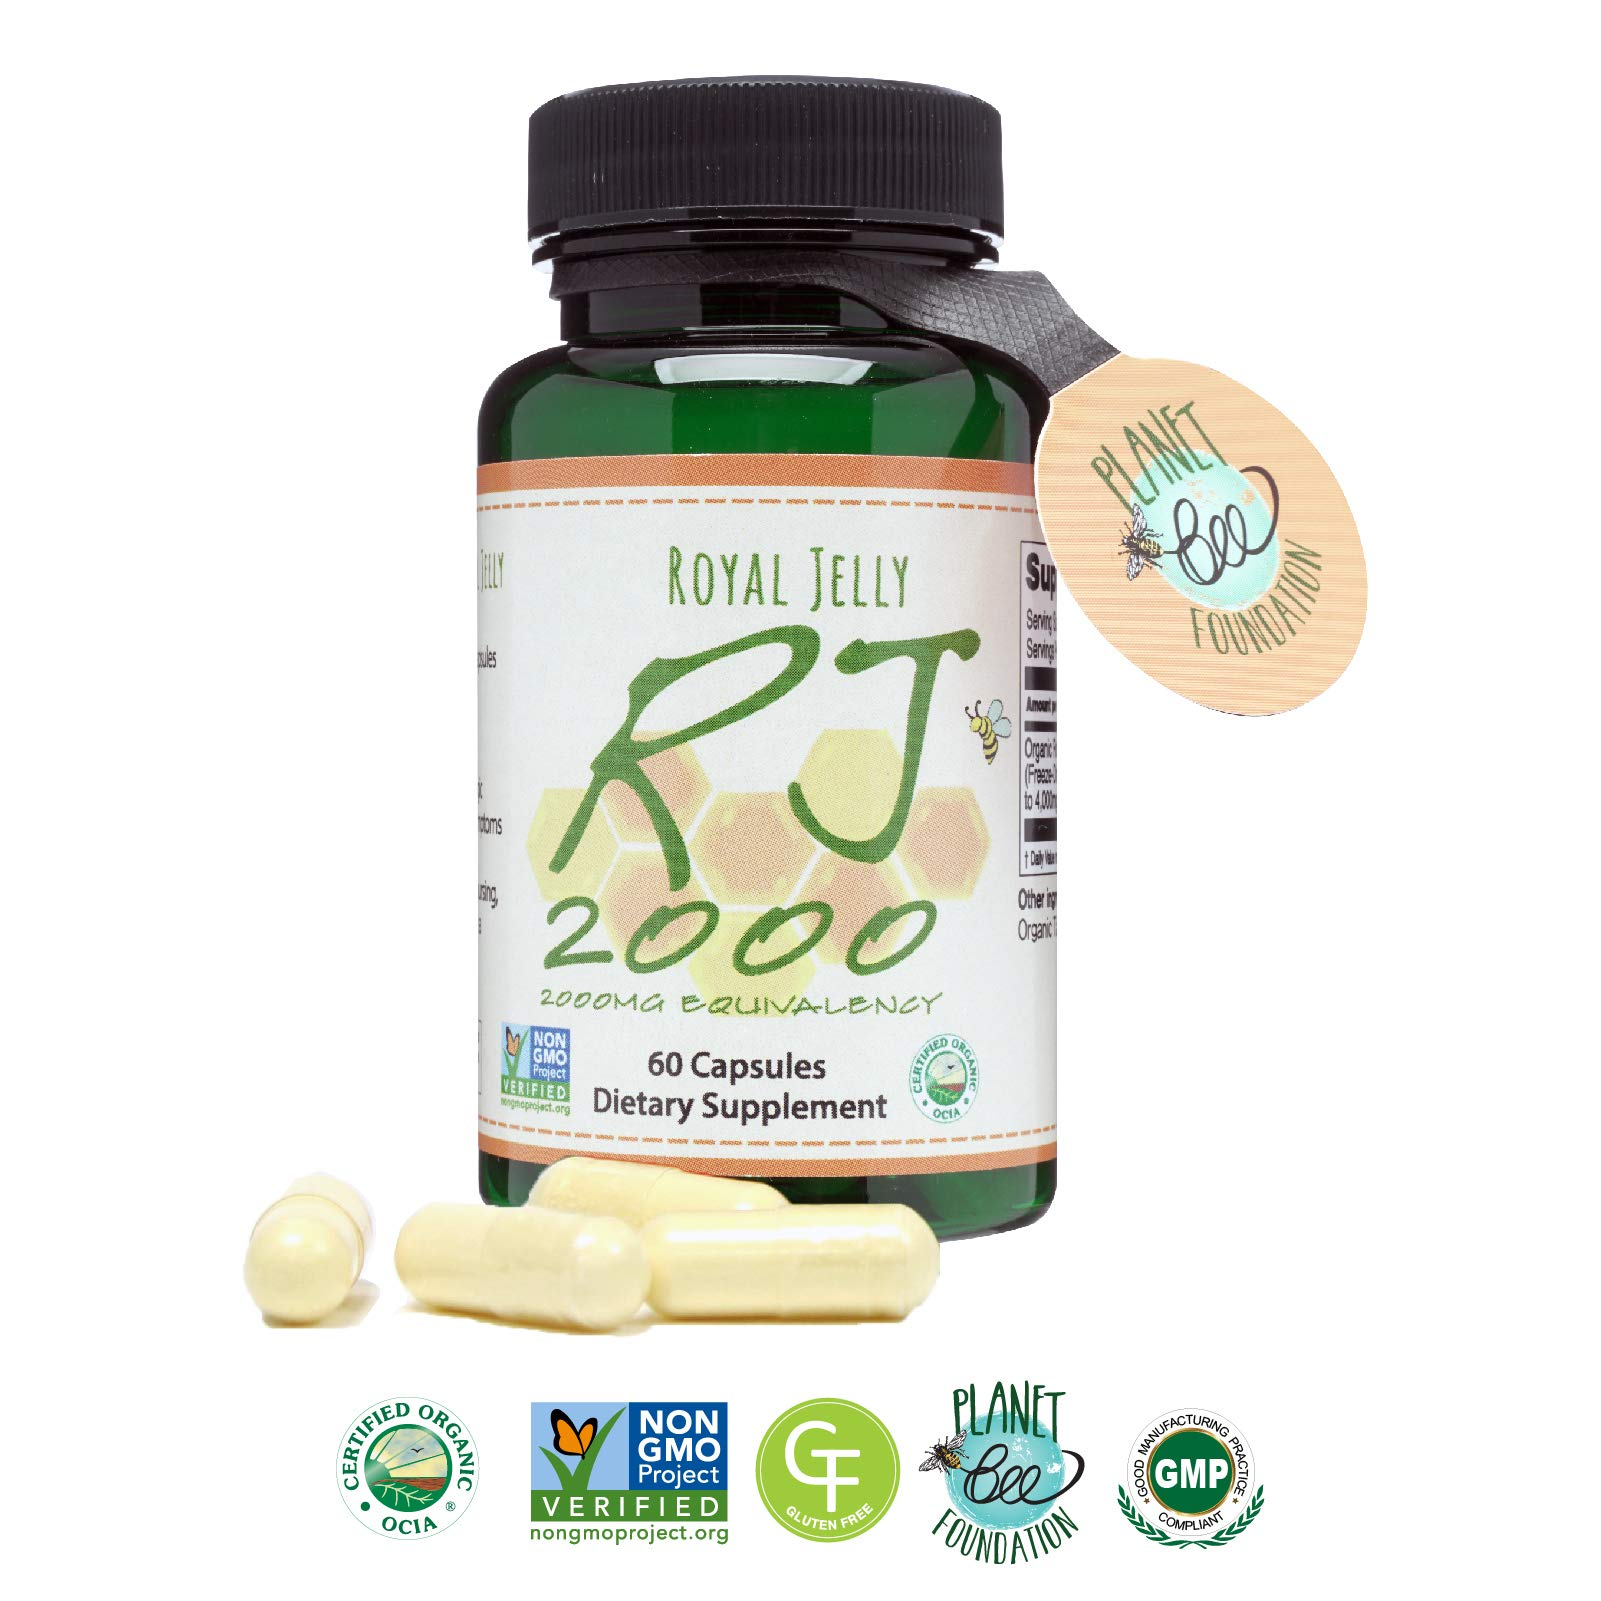 GREENBOW Royal Jelly 2000mg Equivalency - Non GMO Made with Organic Royal Jelly - One of The Most Nutrition Packed Diet Supplements - (60 Vegan Capsules) by Greenbow